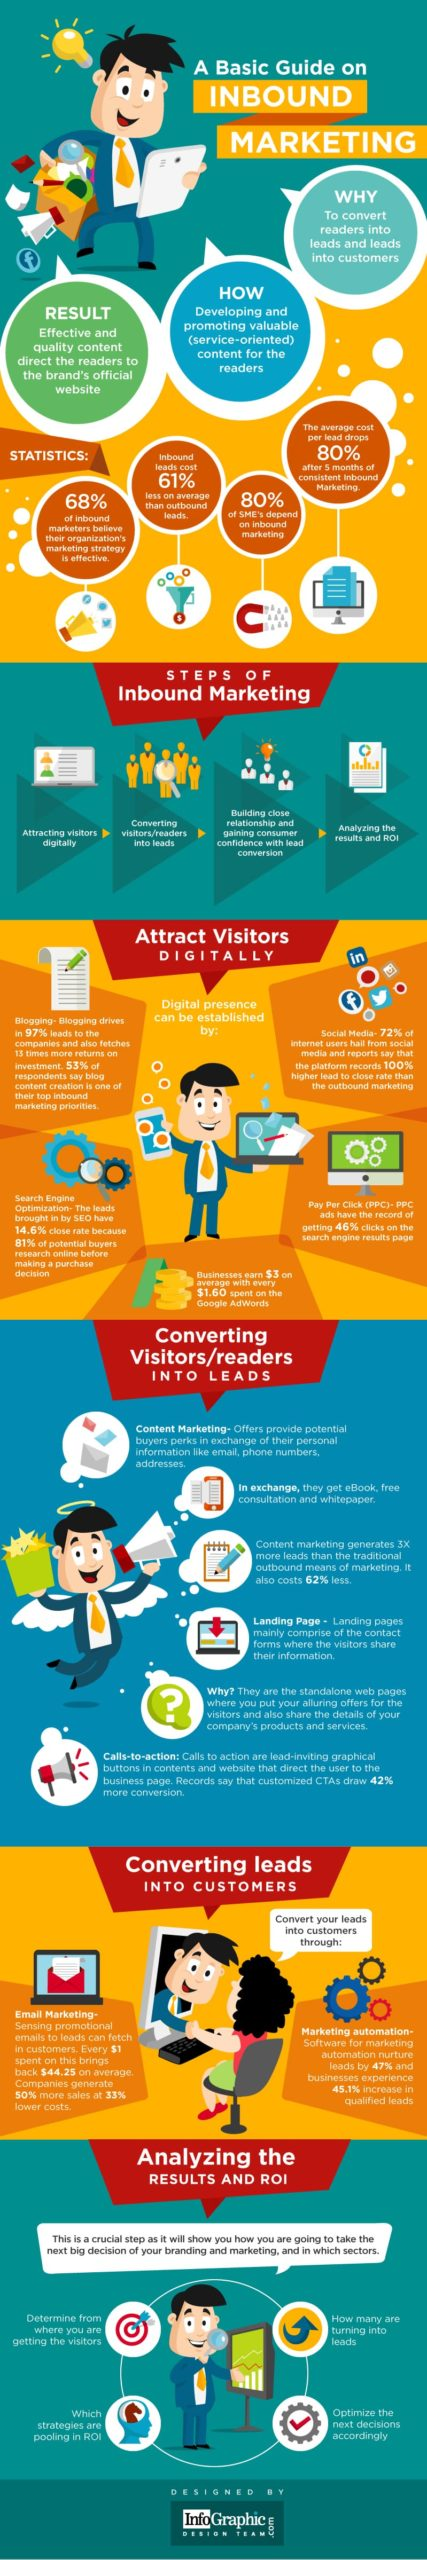 A Basic Guide to Inbound Marketing Infographic Image